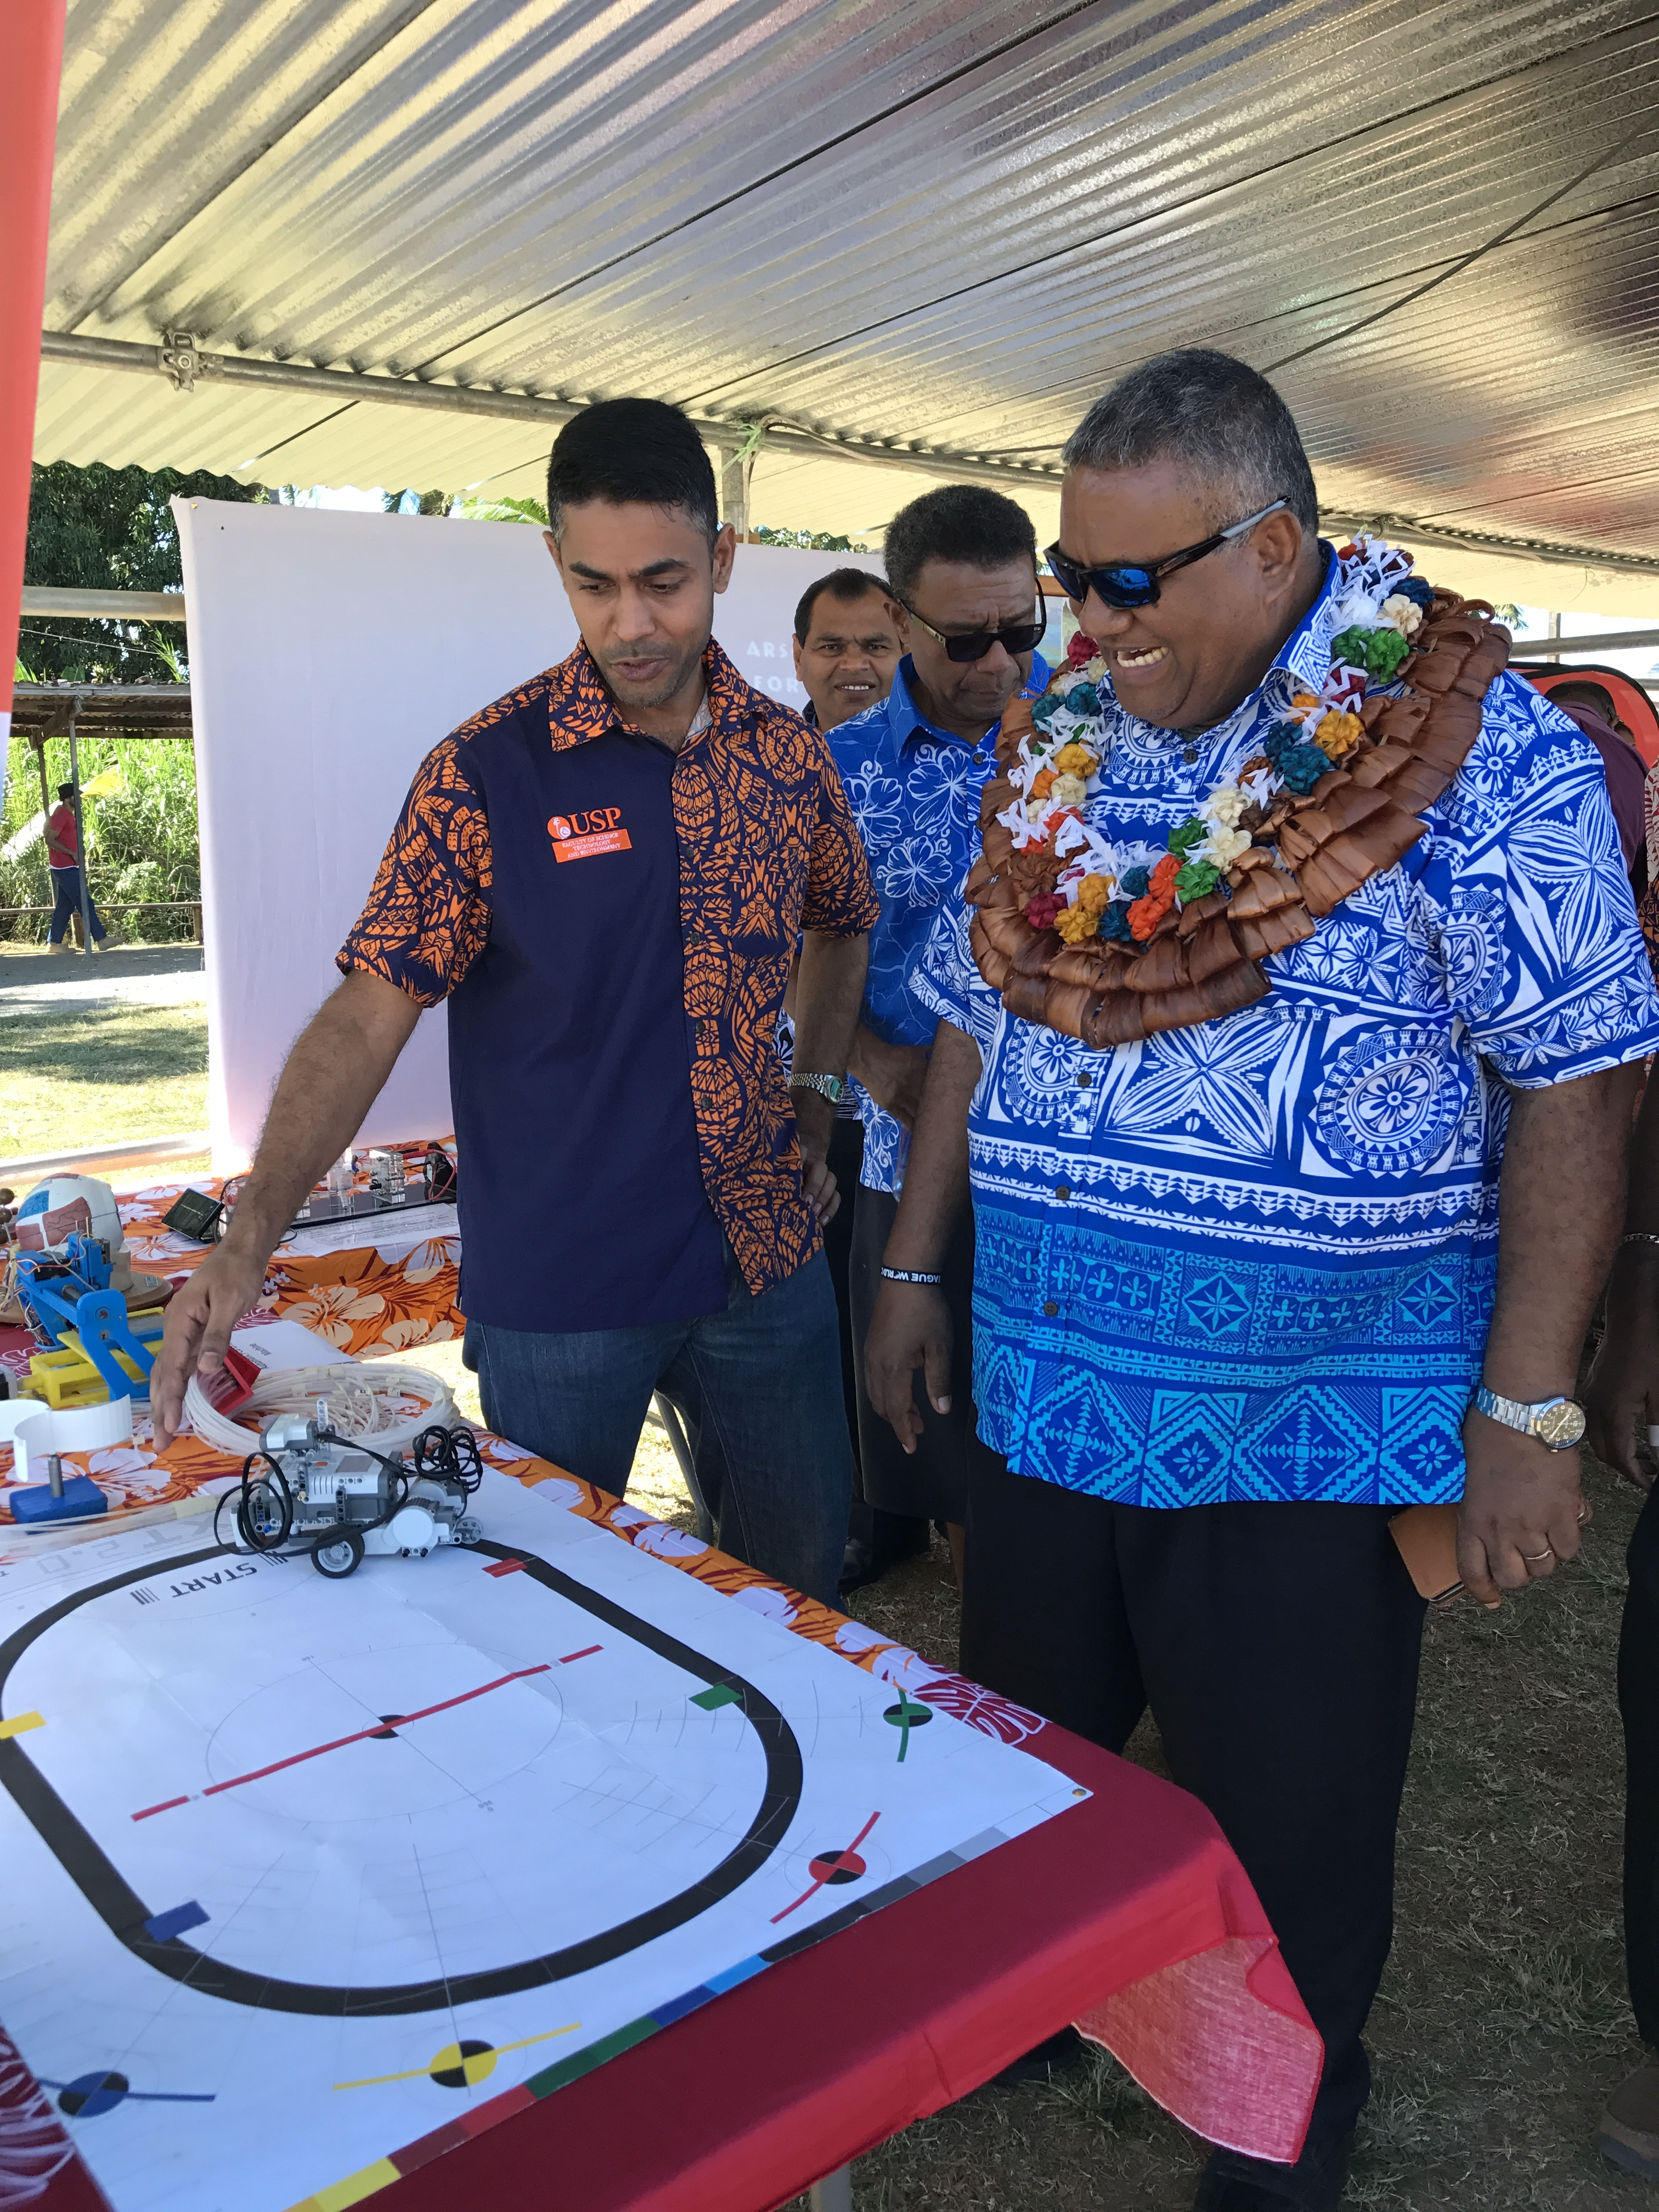 University of the South Pacific School of Engineering and Physics lecturer Sumesh Narayan (left), showing the chief guest Permanent Secretary for Education, Heritage and Arts IowaneTiko the line following robot during the University of the South Pacific Open Day at Subrail Park in Labasa on July 28, 2017. Photo: Shratika Singh